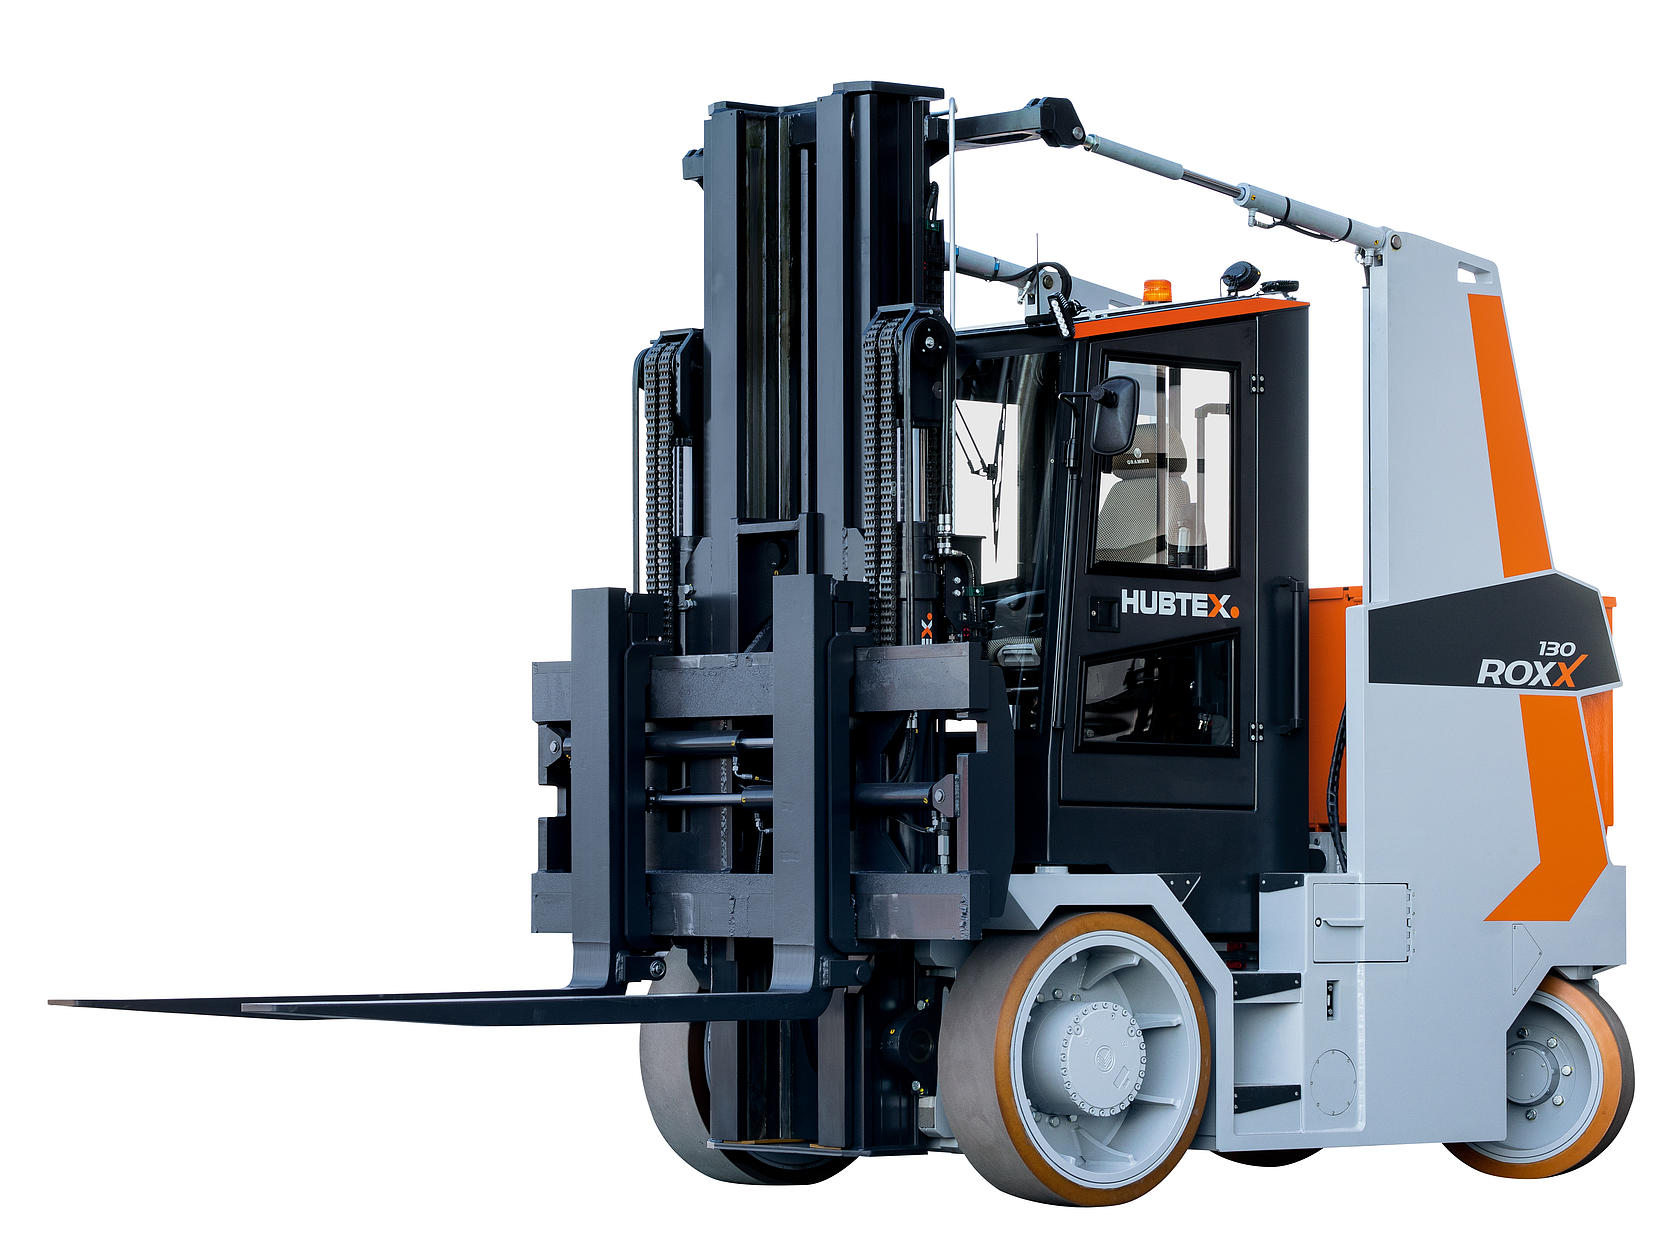 the new HUBTEX RoxX heavy-duty compact frontlift